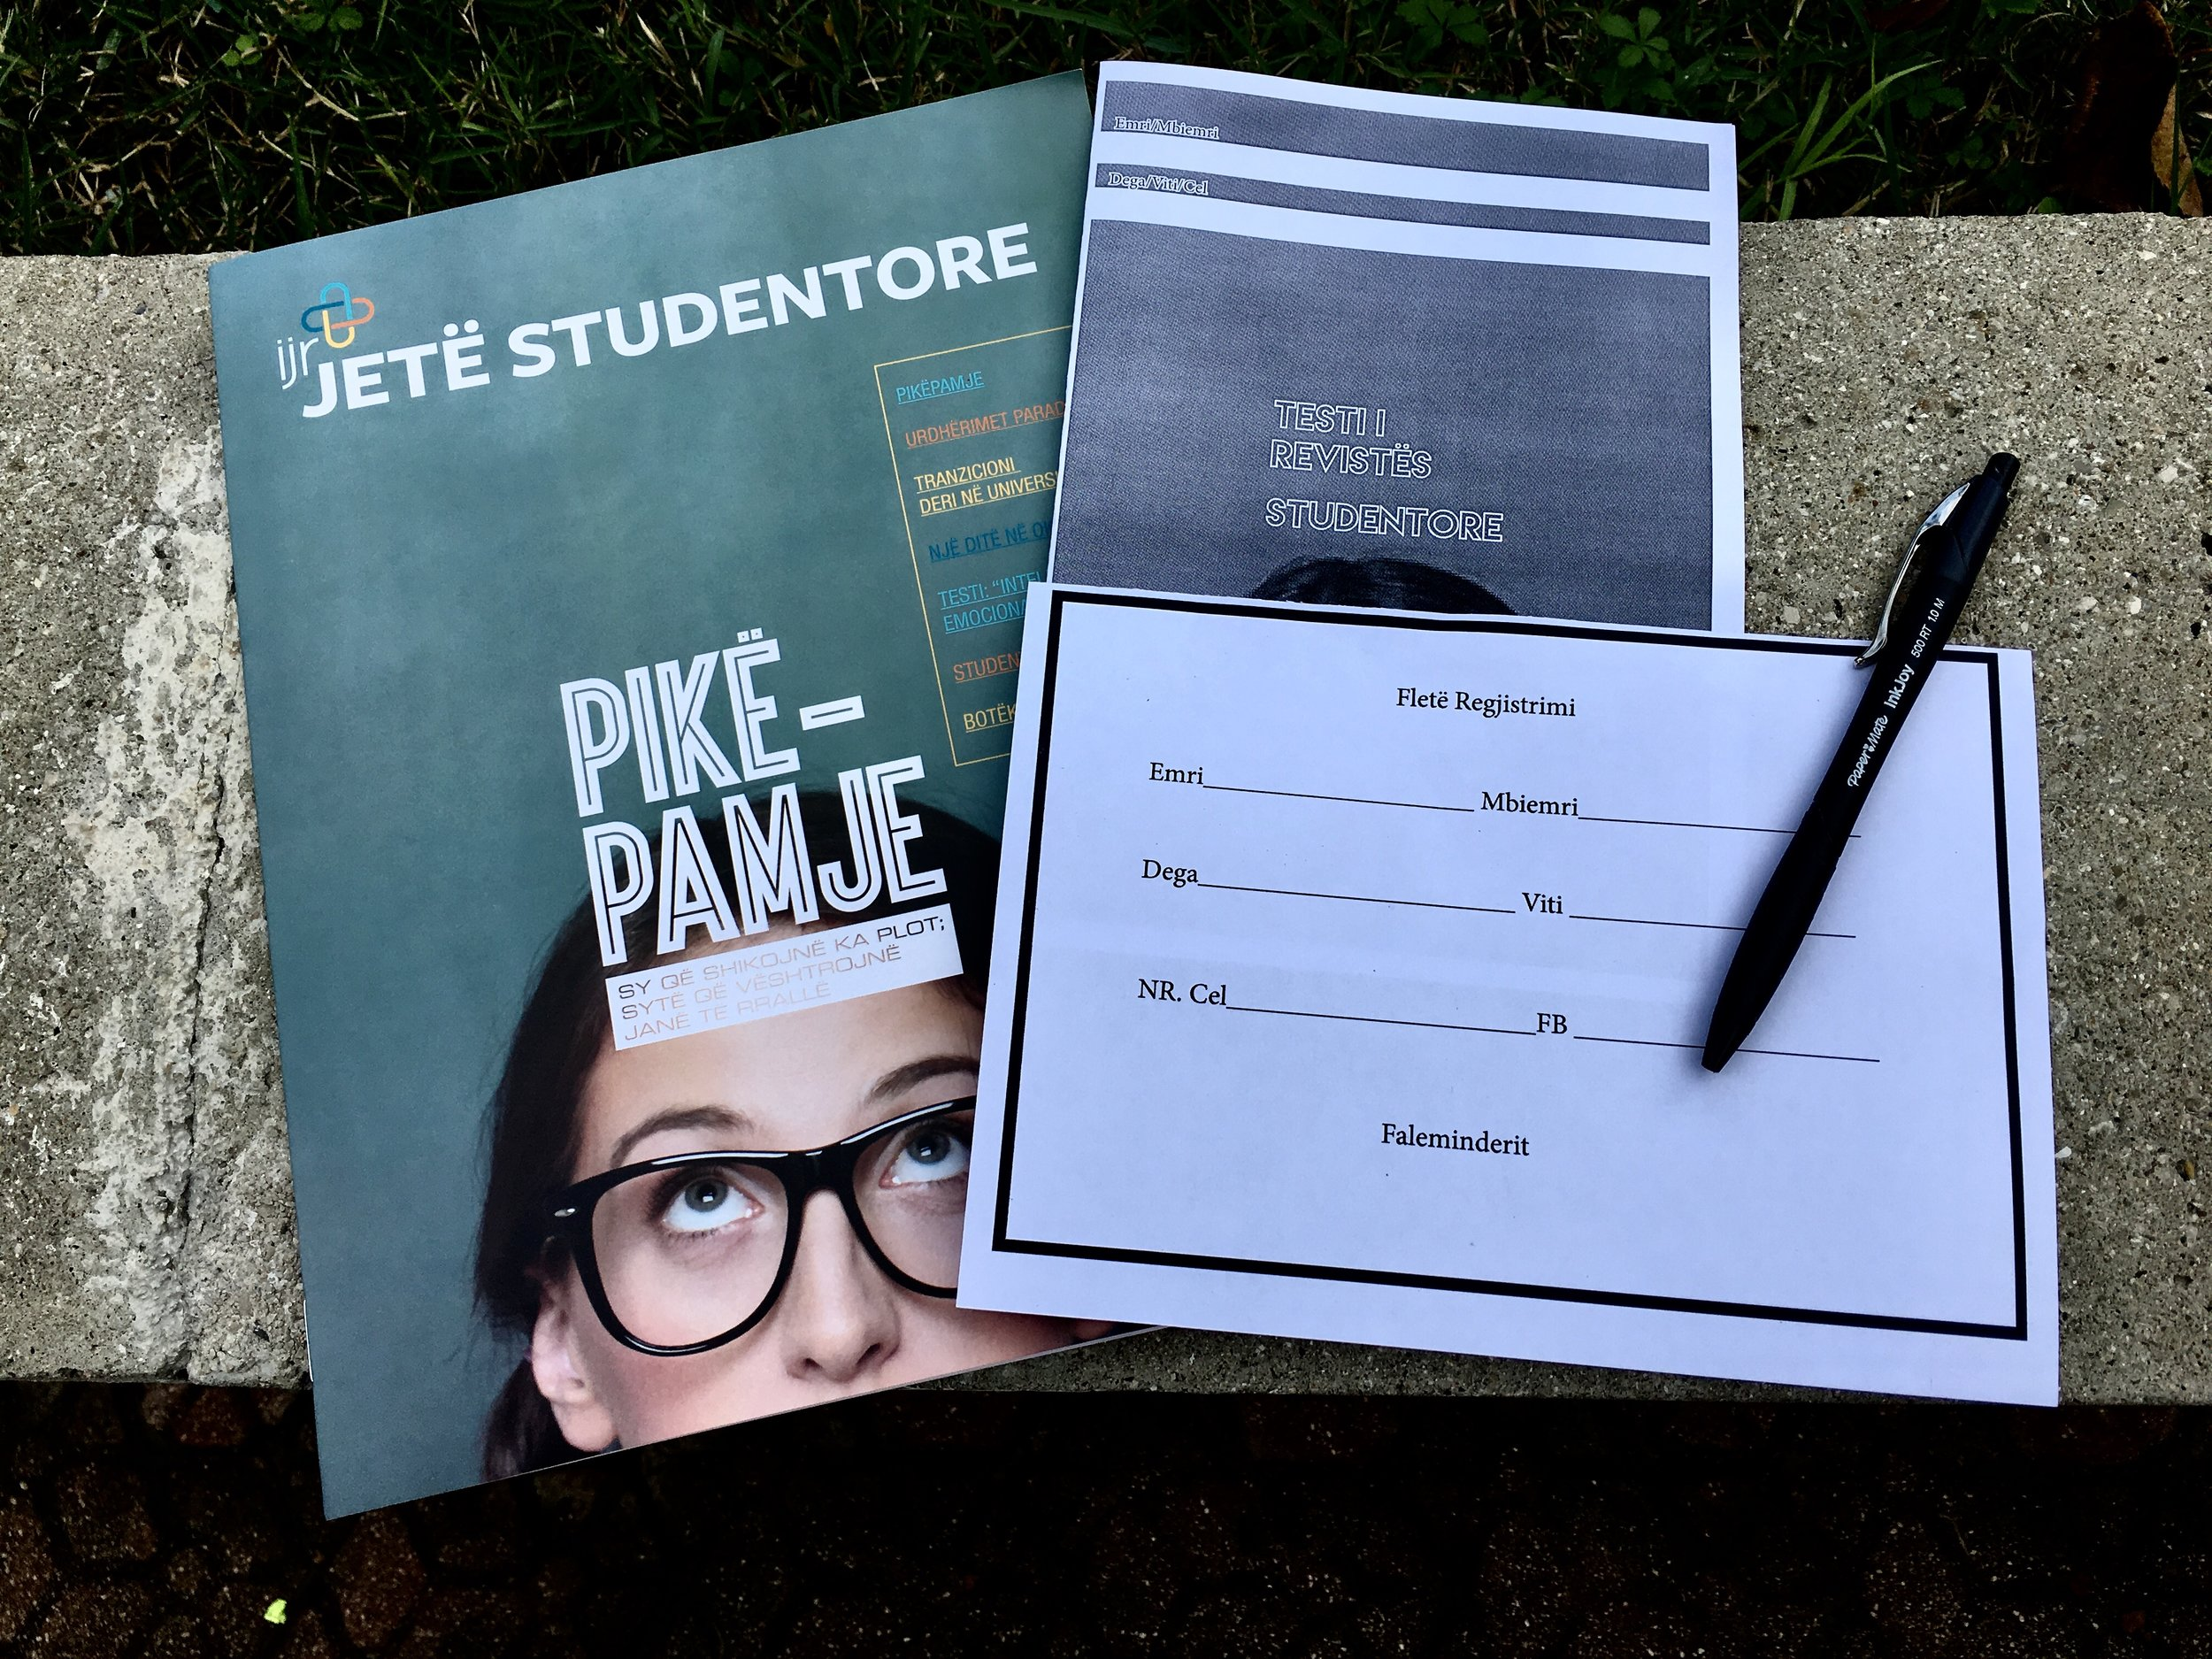 The student magazine, the test they can take to possibly win an iPad mini, and the sheet each student would complete with their contact information